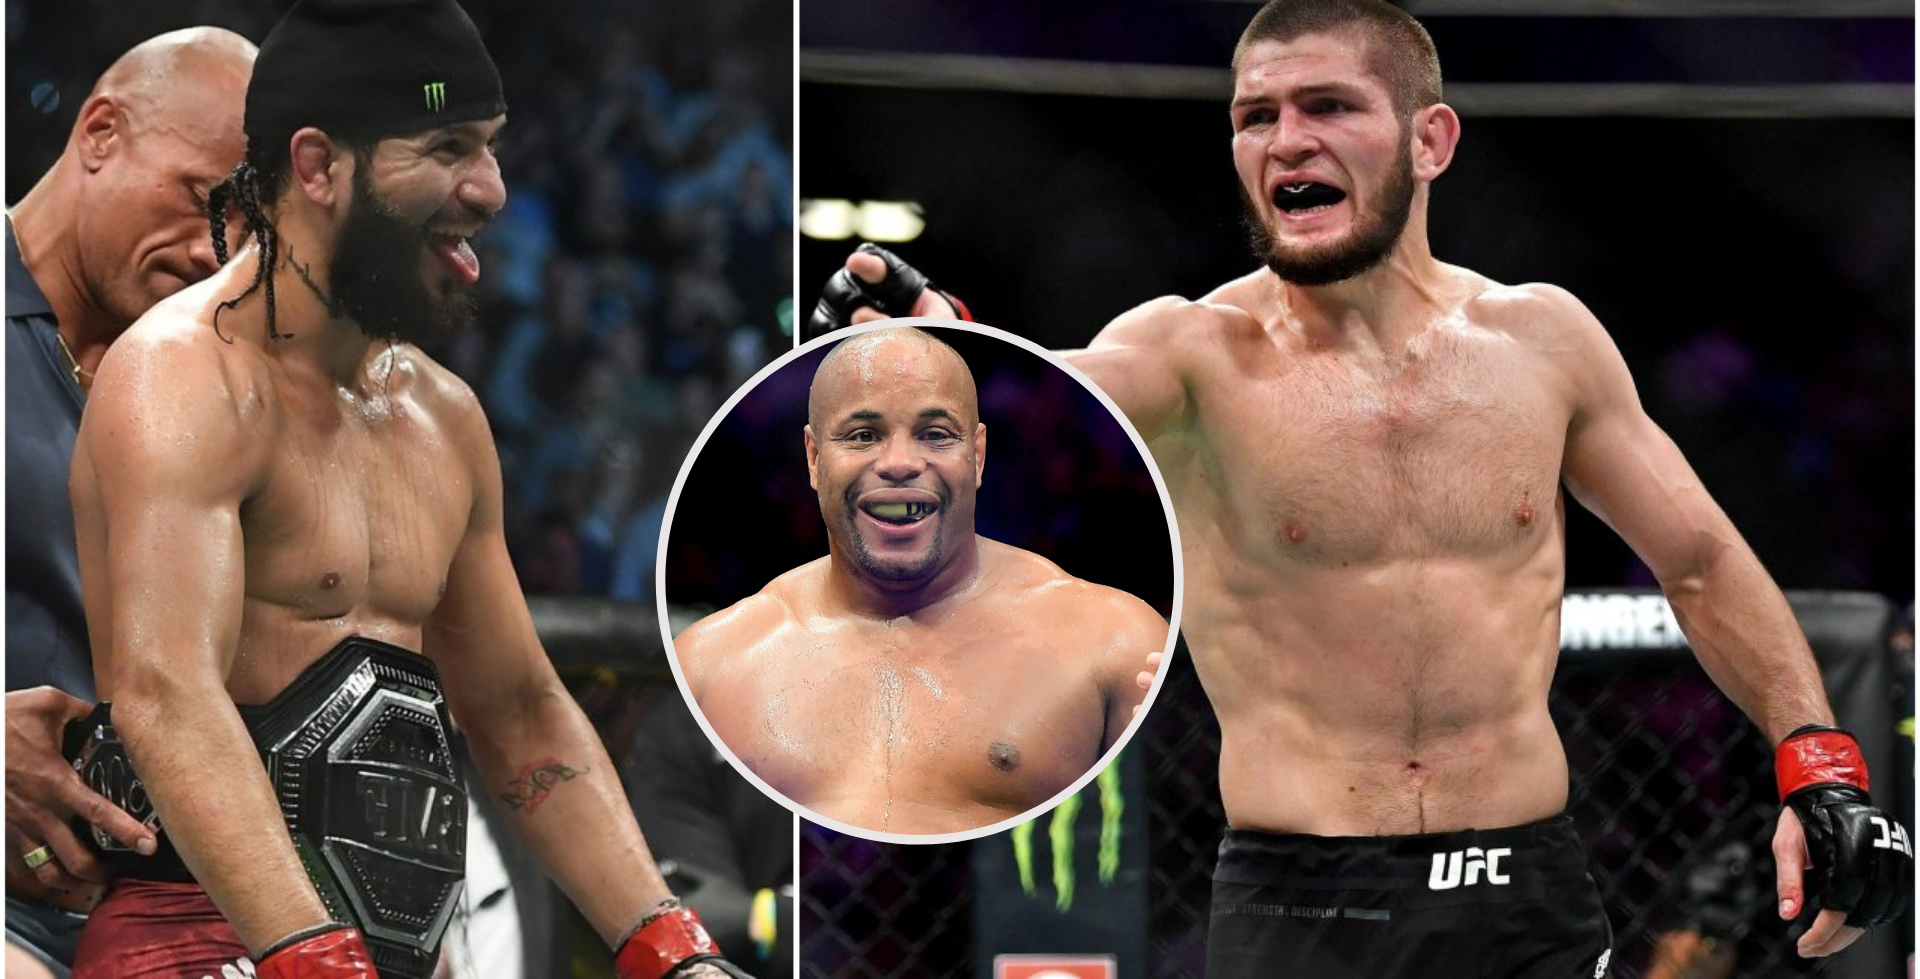 Daniel Cormier hints that Jorge Masvidal is a bigger draw than teammate Khabib Nurmagomedov - Jorge Masvidal